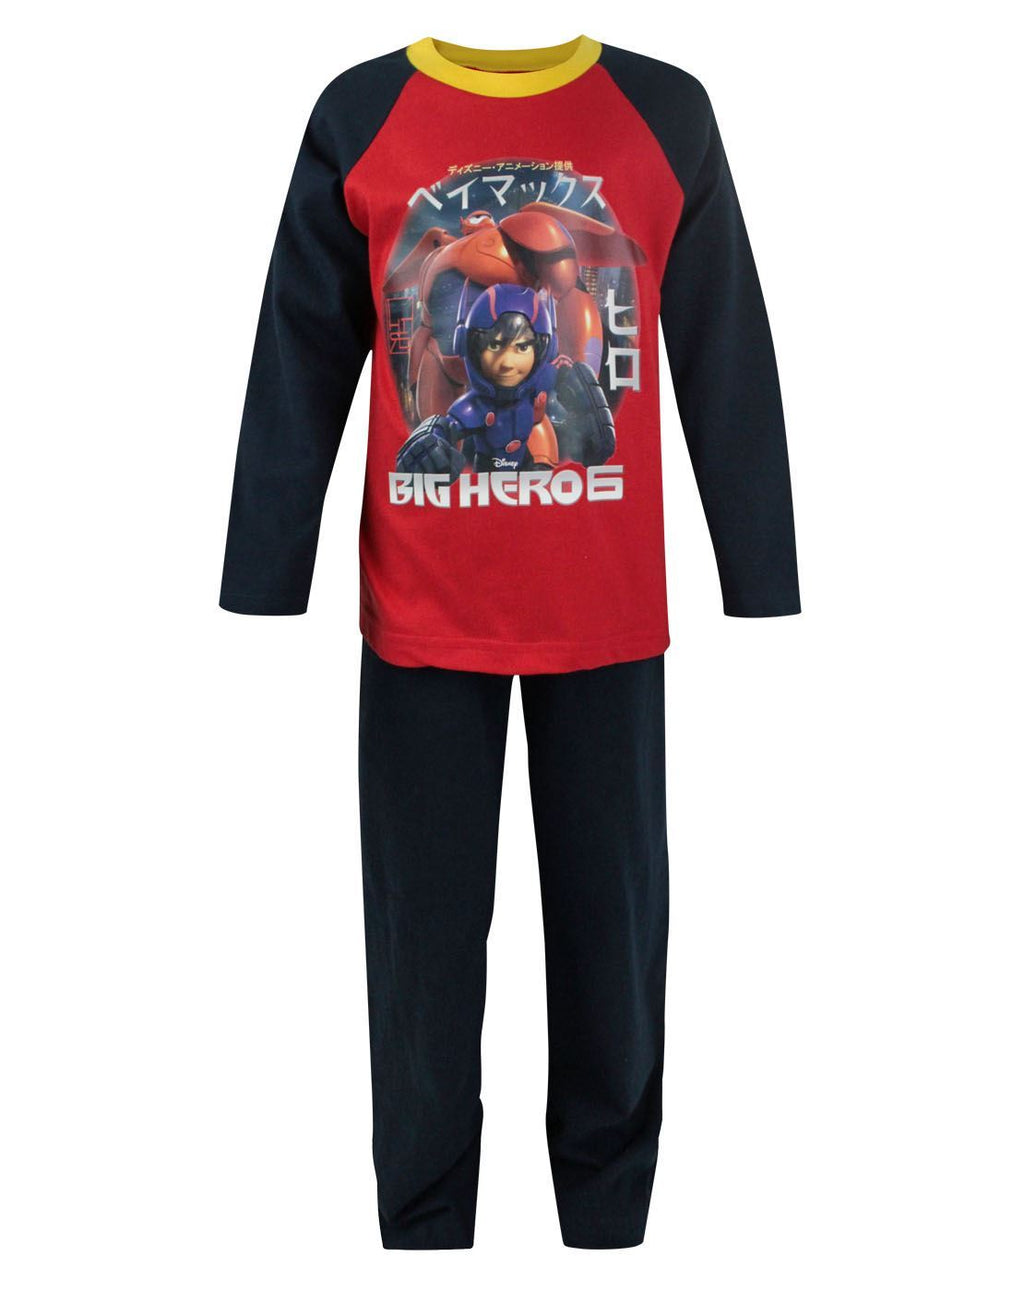 Big Hero 6 Hiro and Baymax Boy's Pyjamas